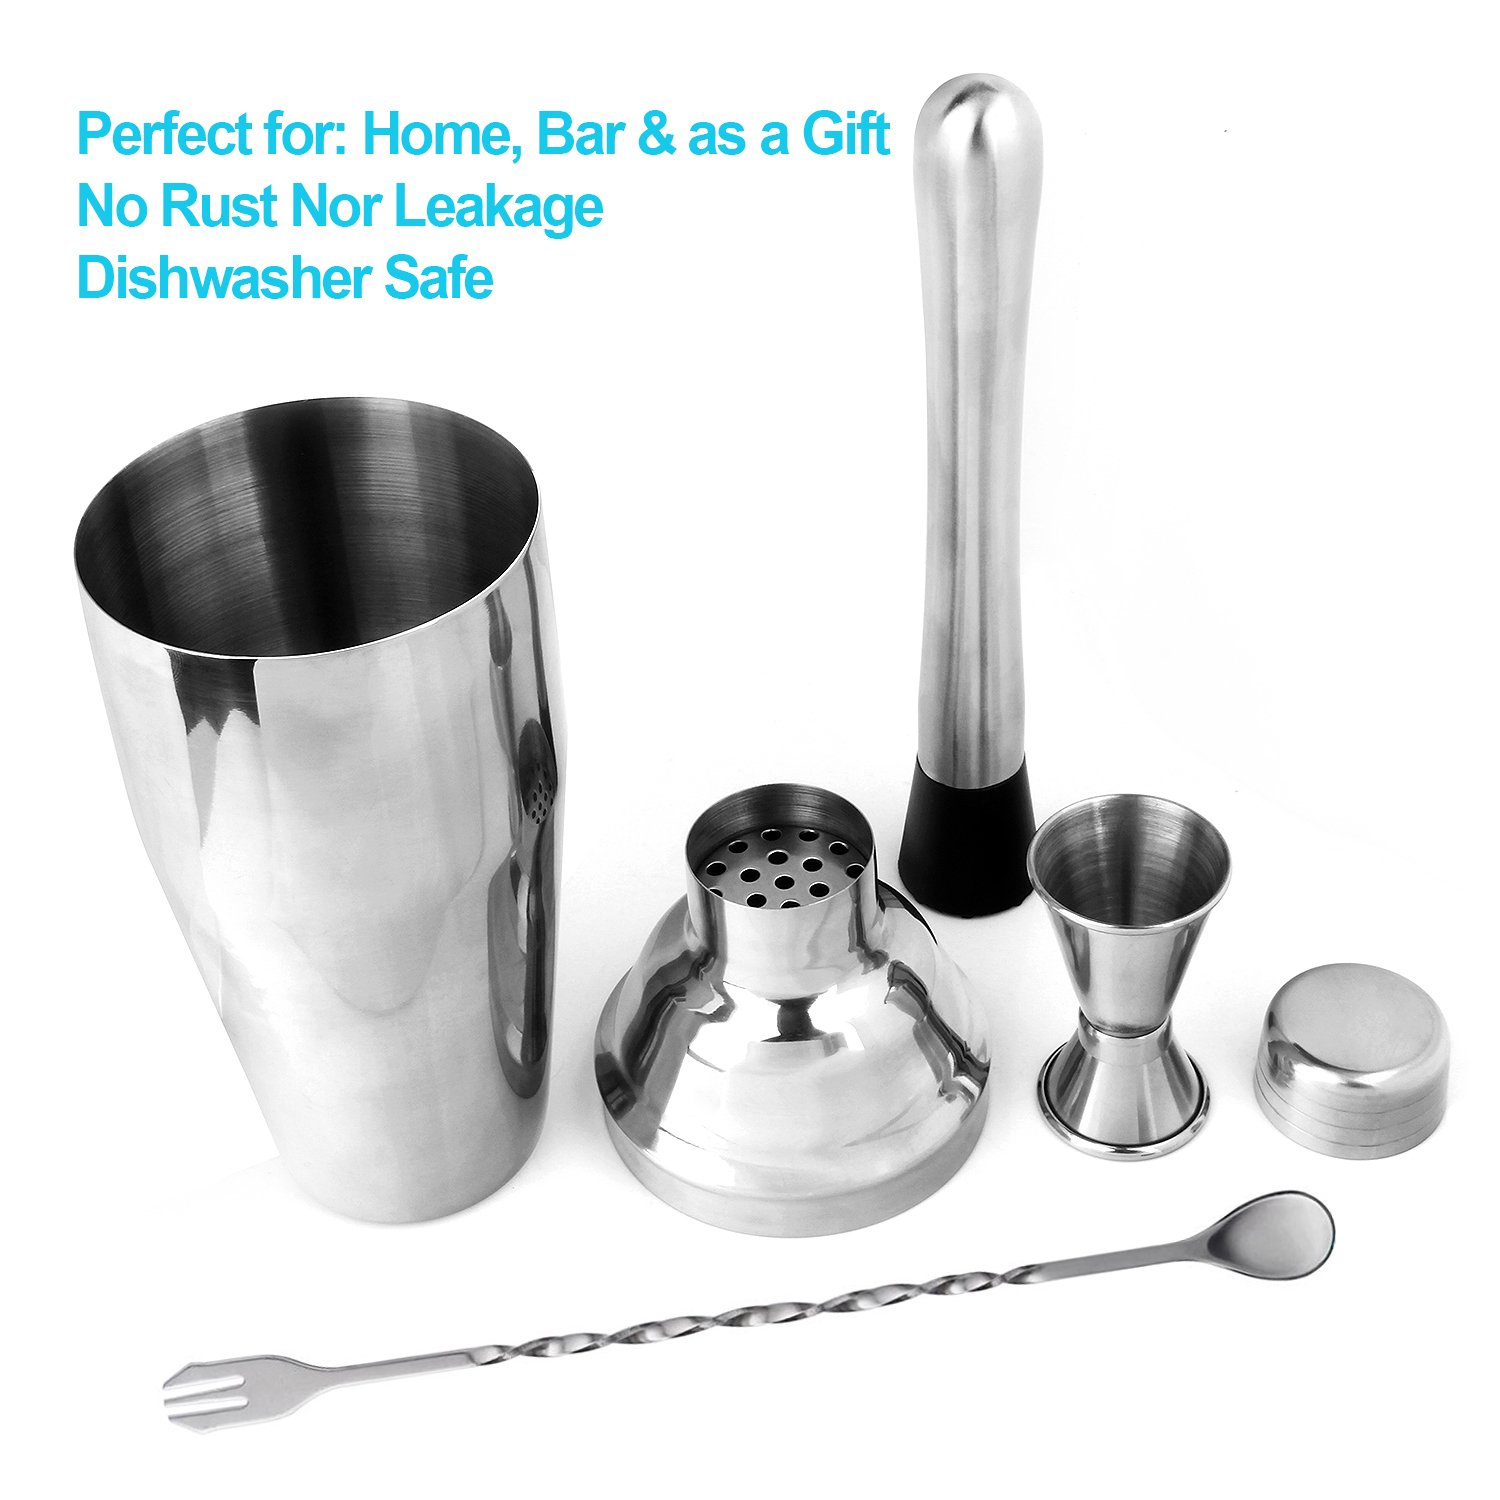 Cocktail Shaker Set by STONEKAE 24 oz Stainless Steel Cocktail Shaker with Strianer,Jigger,Muddler, Mixing Spoon,2 Pourers, Professional Kit Gift